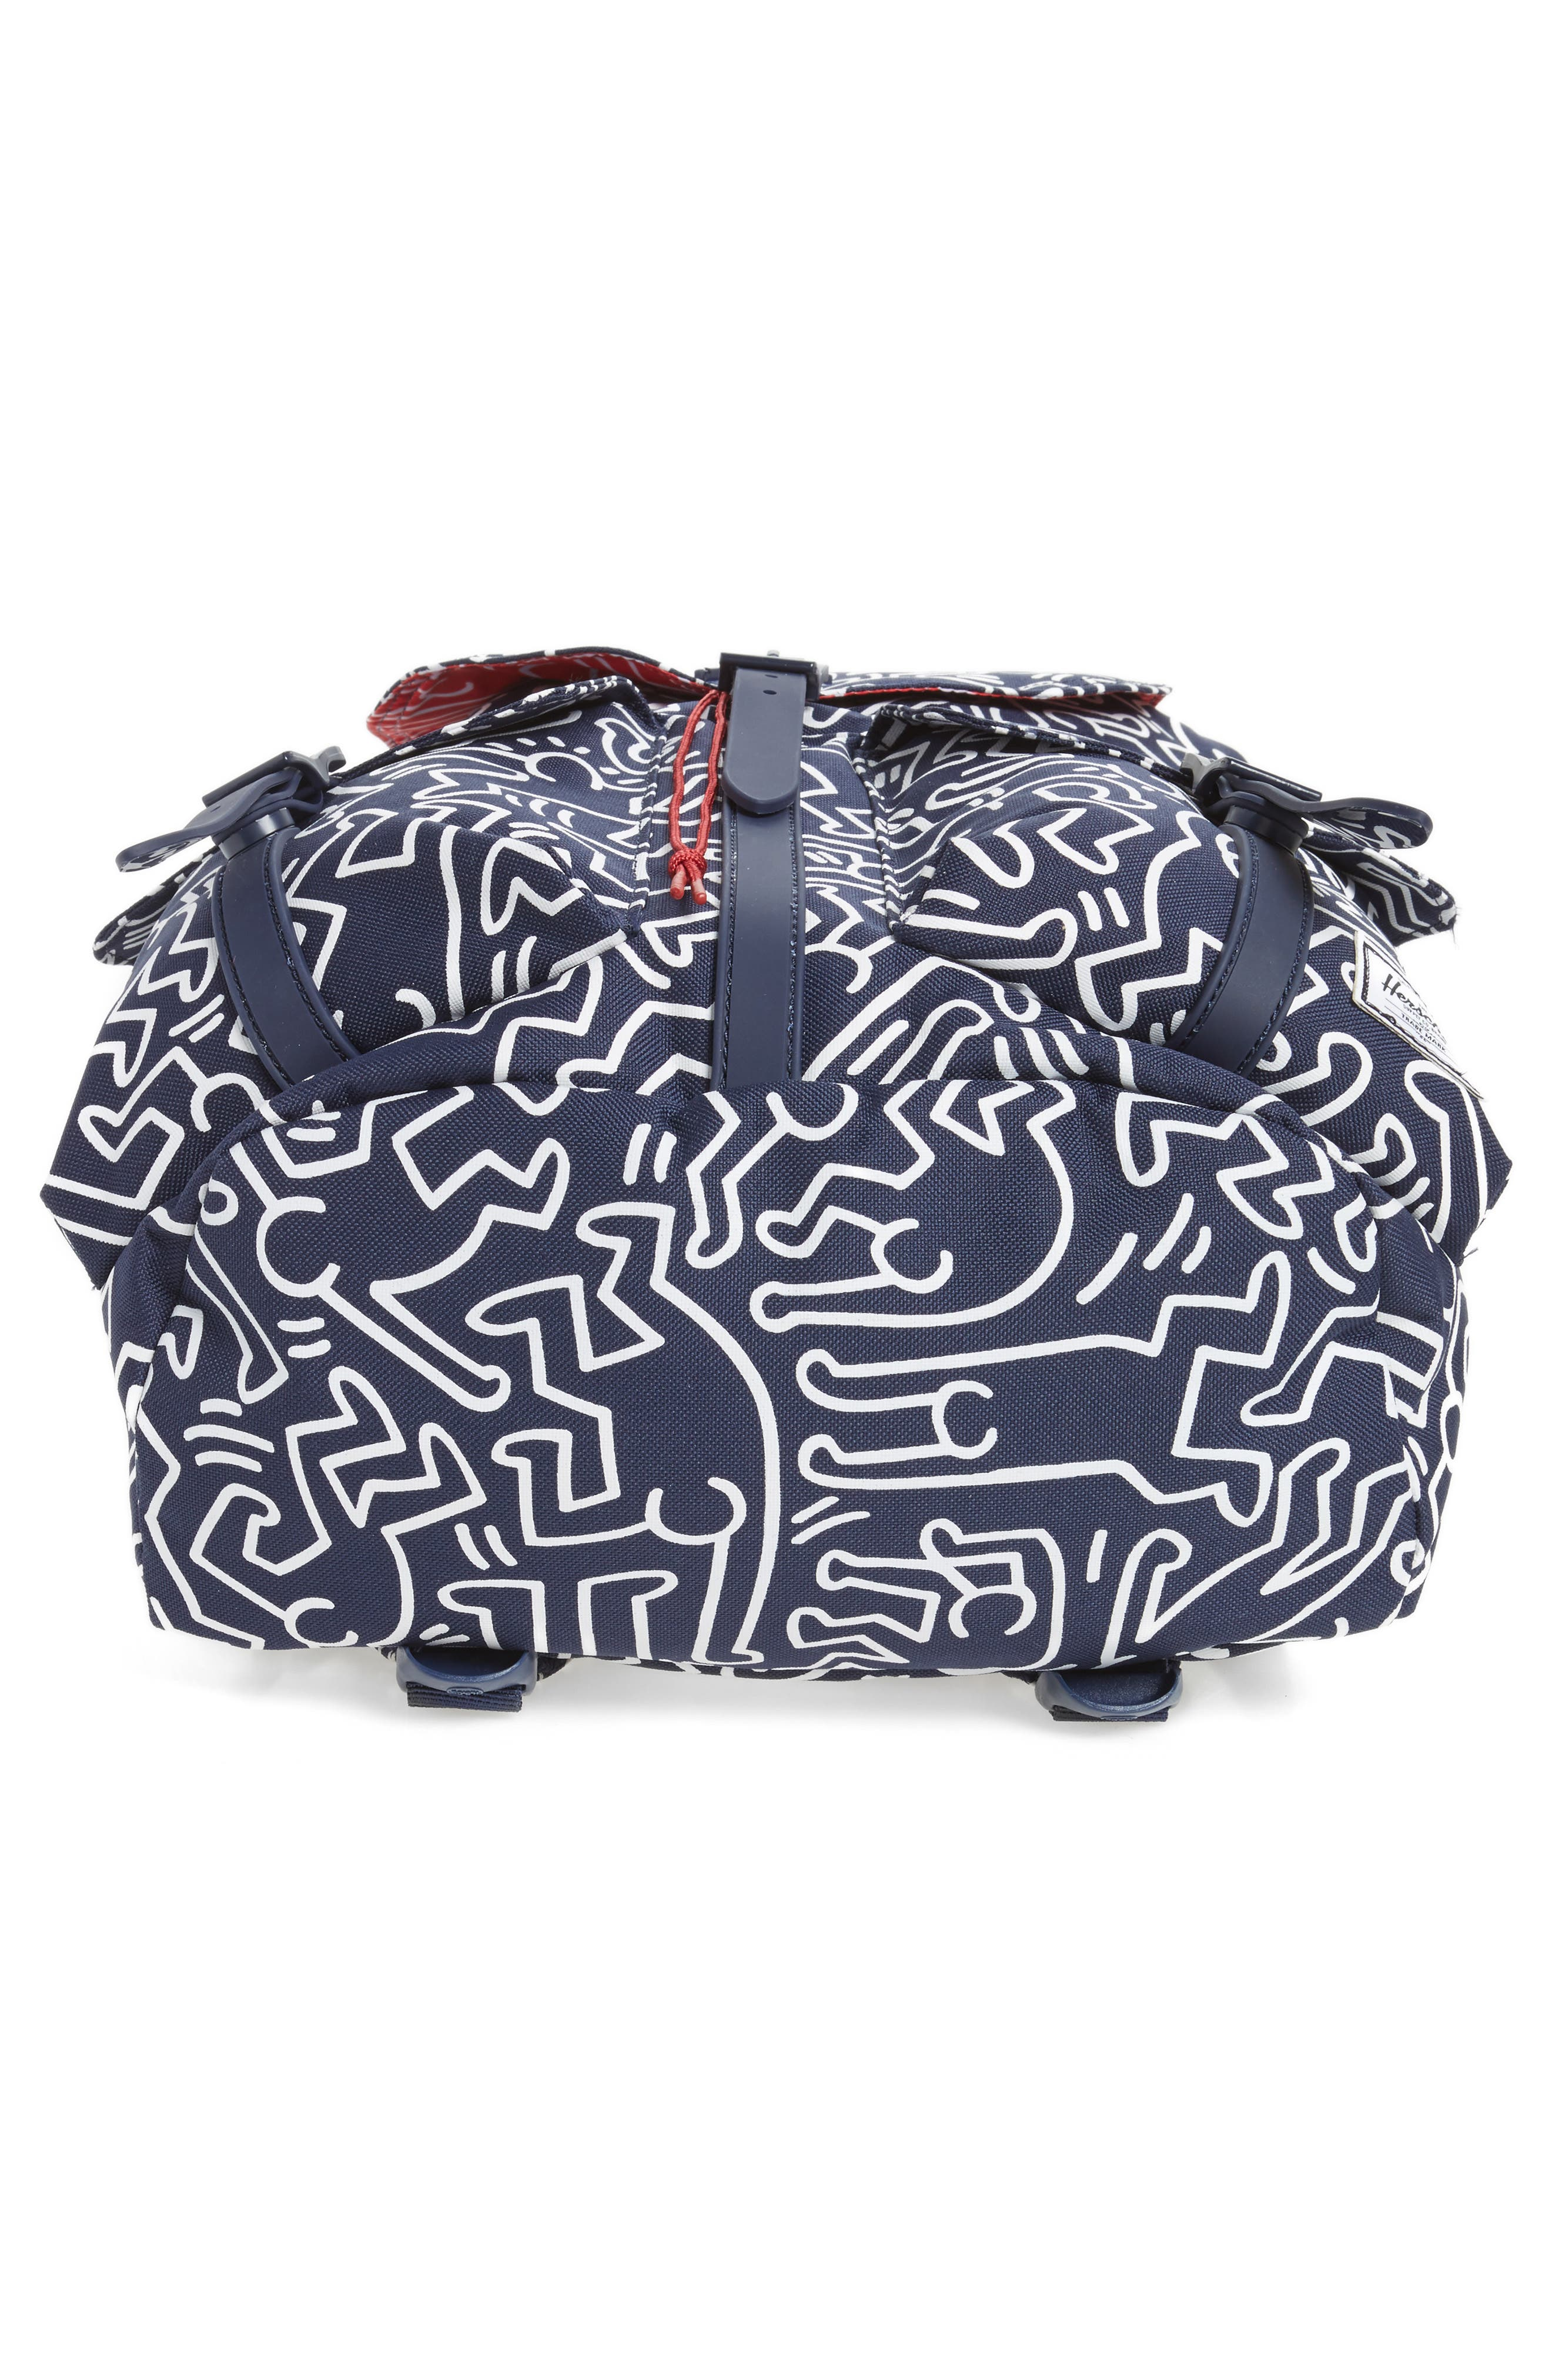 Dawson Keith Haring Backpack,                             Alternate thumbnail 6, color,                             477